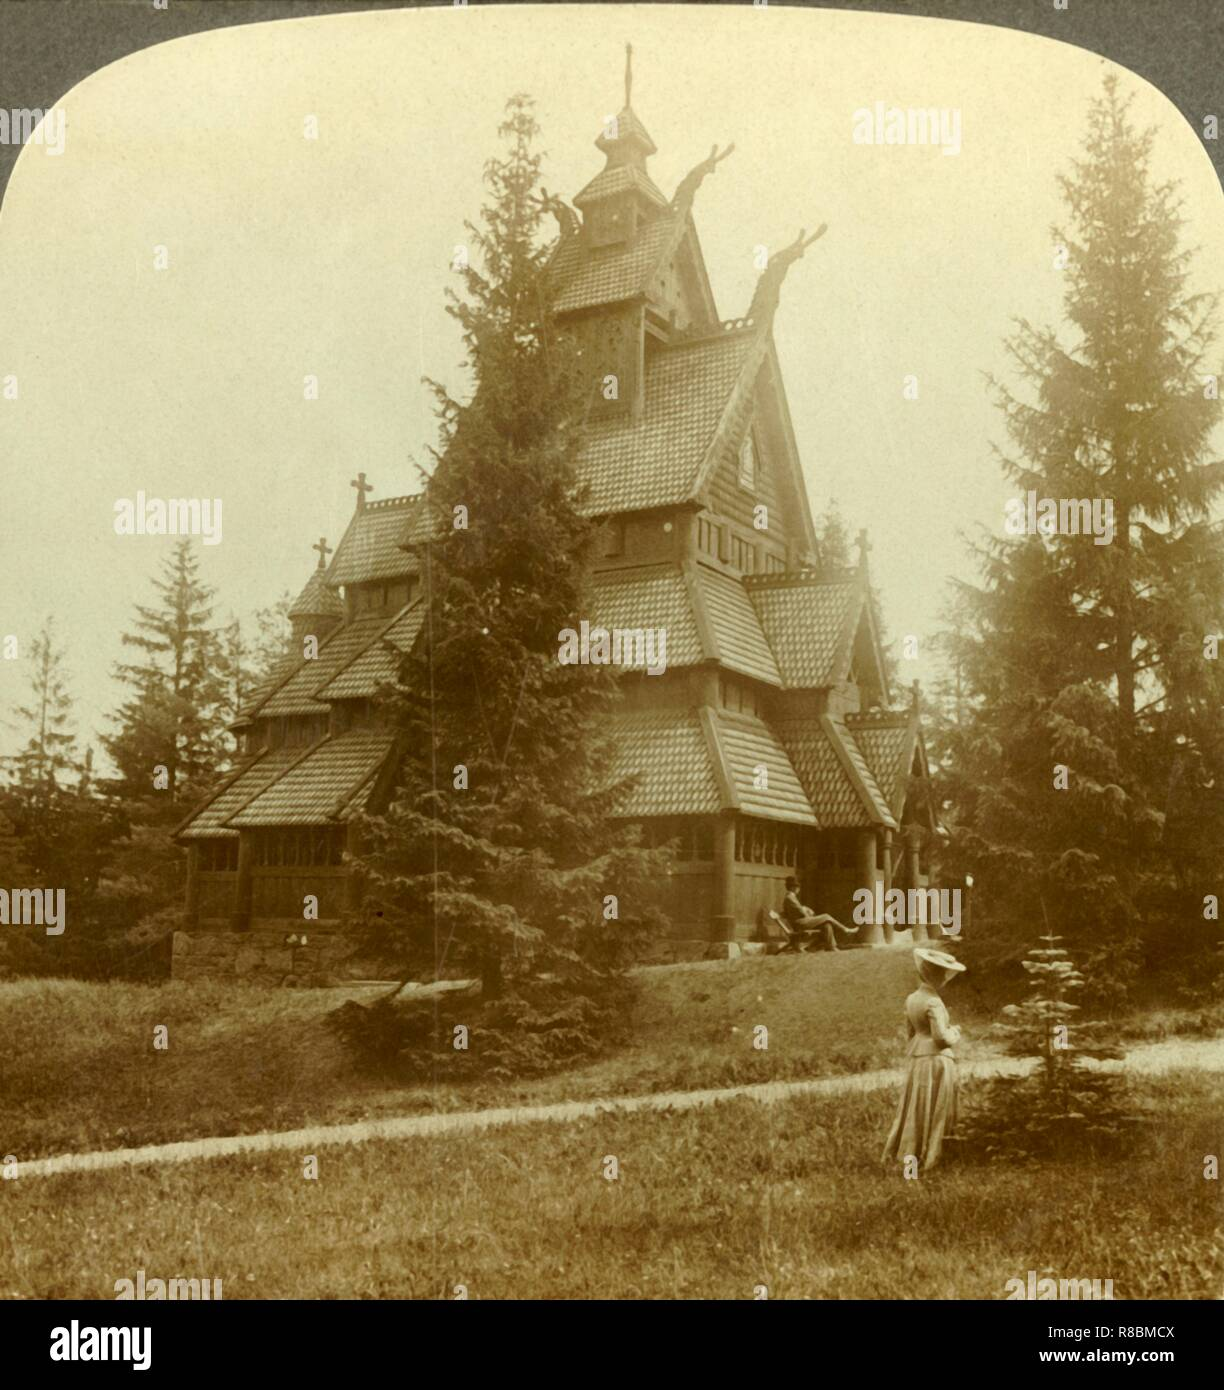 "'The old Church of Gol, a quaint 12th cent. Building at Osoarshal, Norway', c1905. From ""The Underwood Travel Library - Norway"". [Underwood & Underwood, London ] - Stock Image"